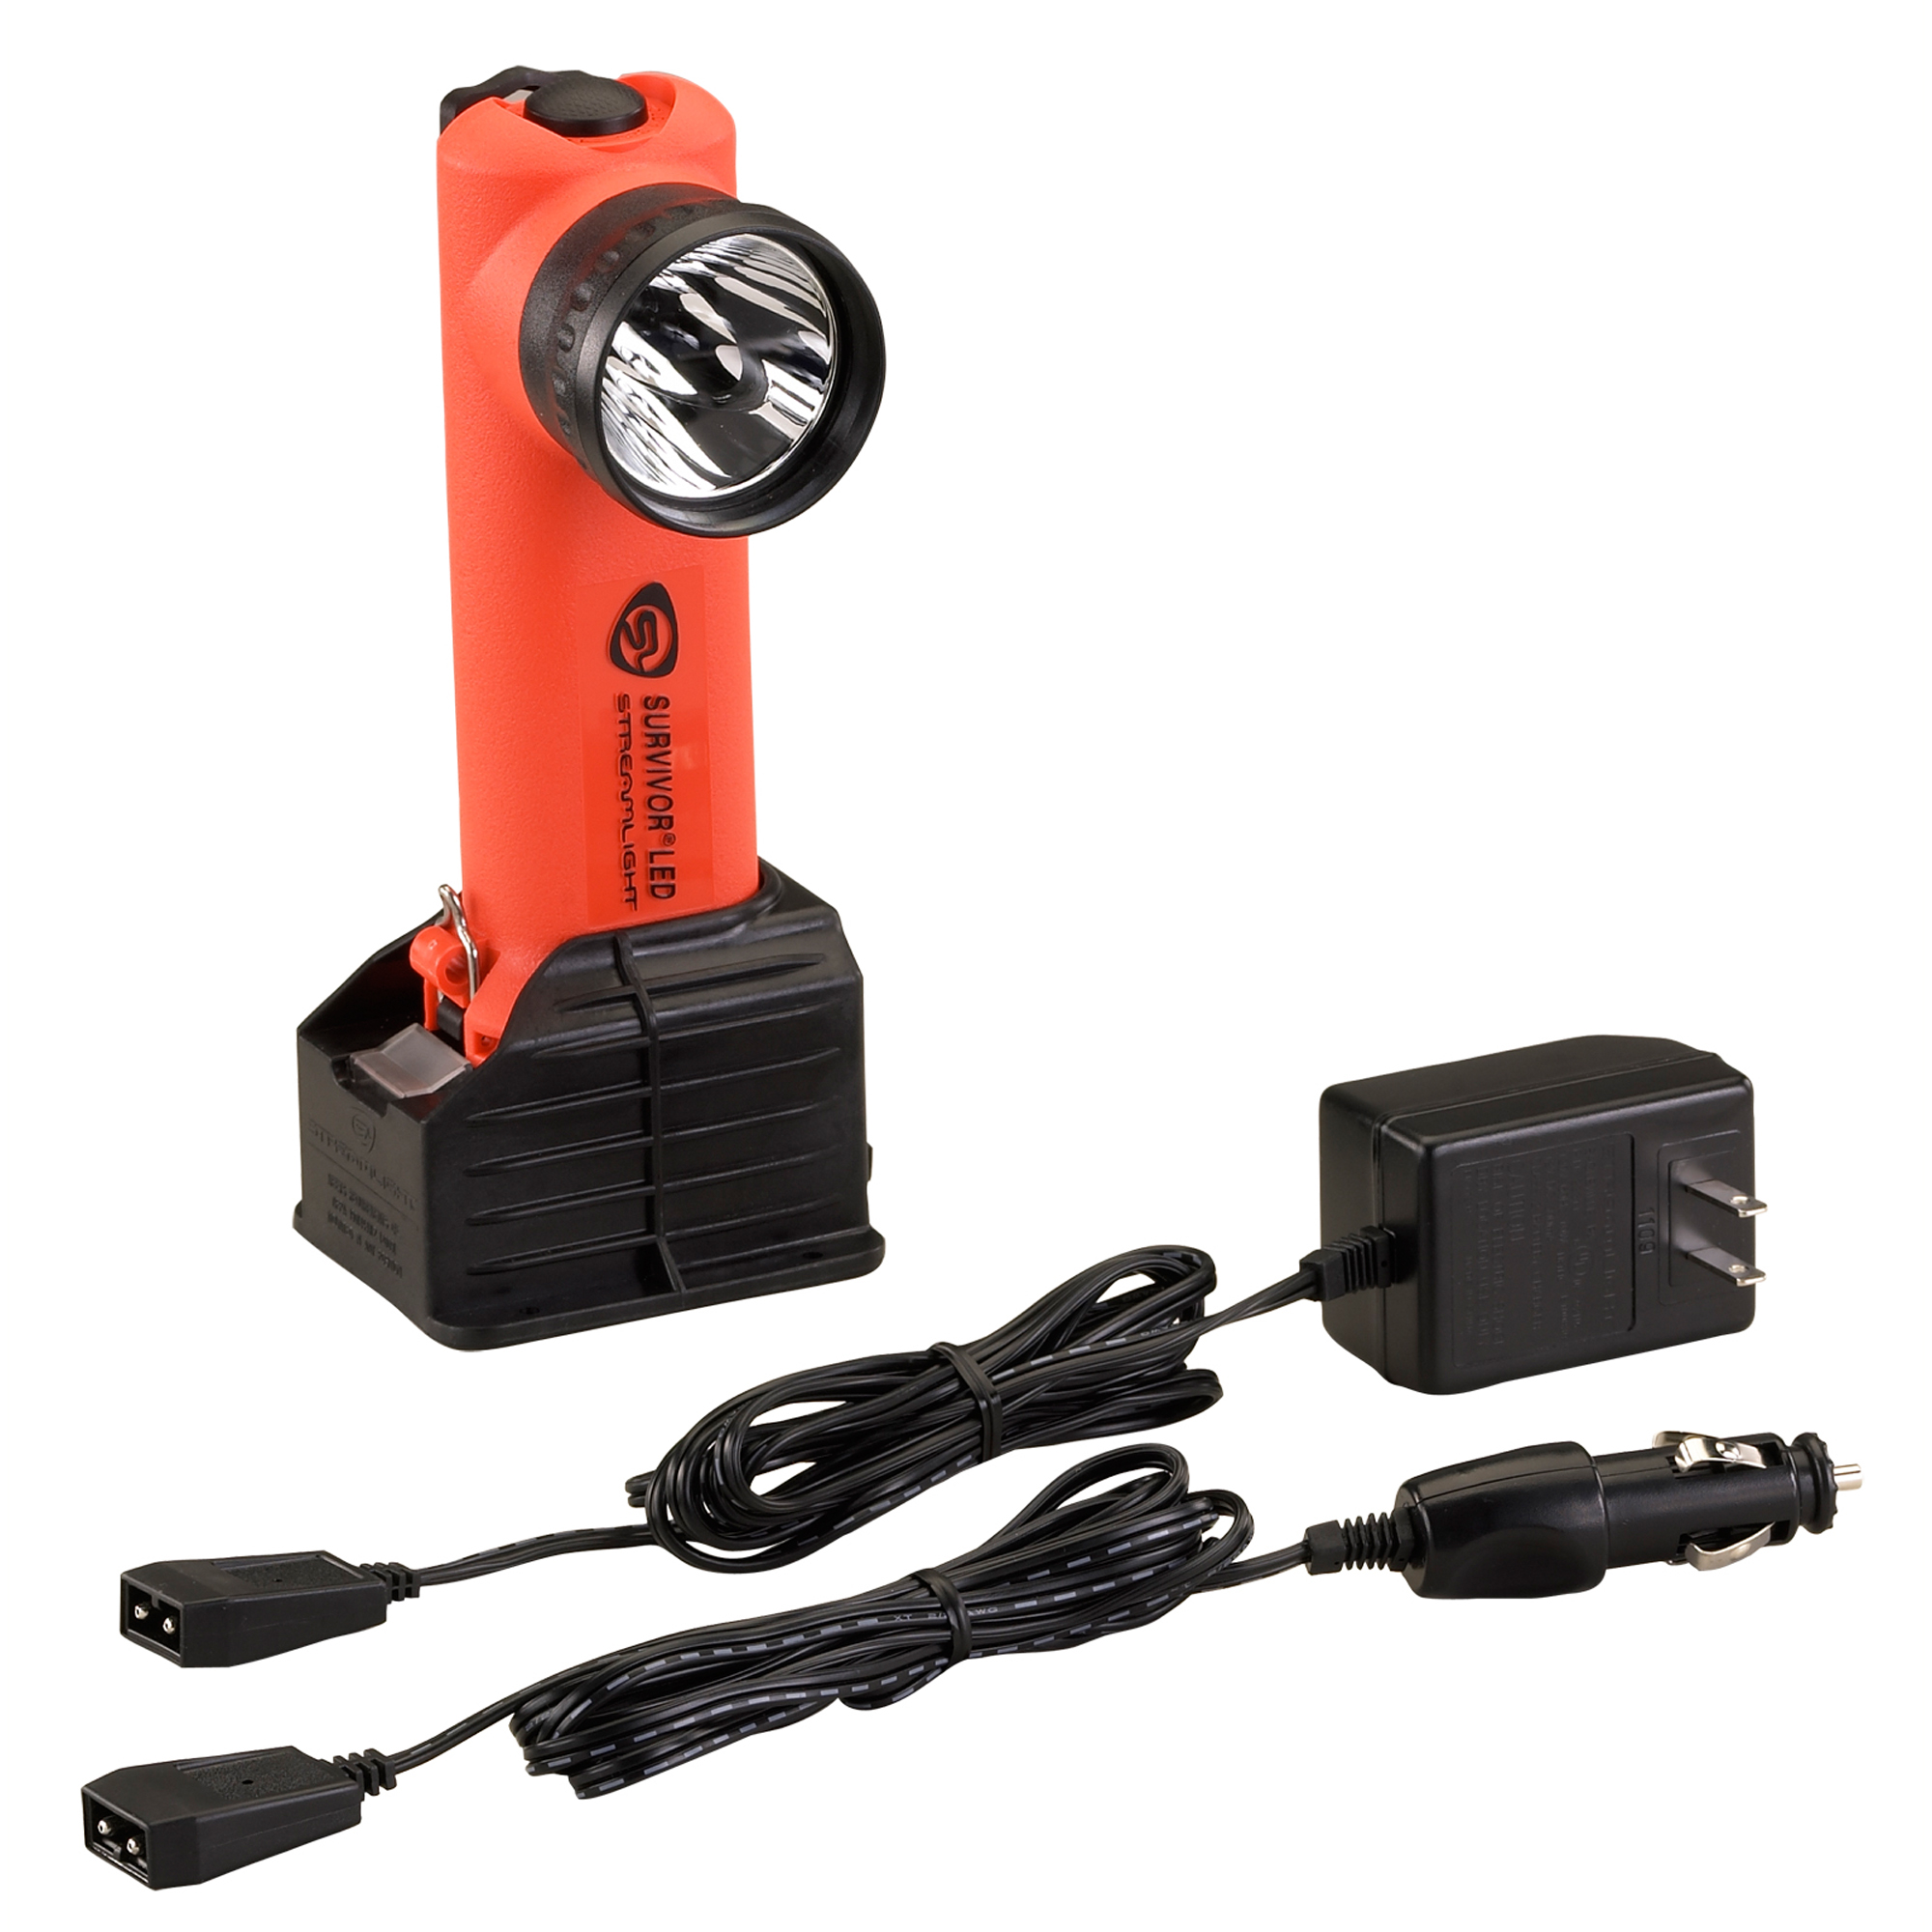 Streamlight Survivor LED Flashlight, (Orange, AC DC) by Streamlight